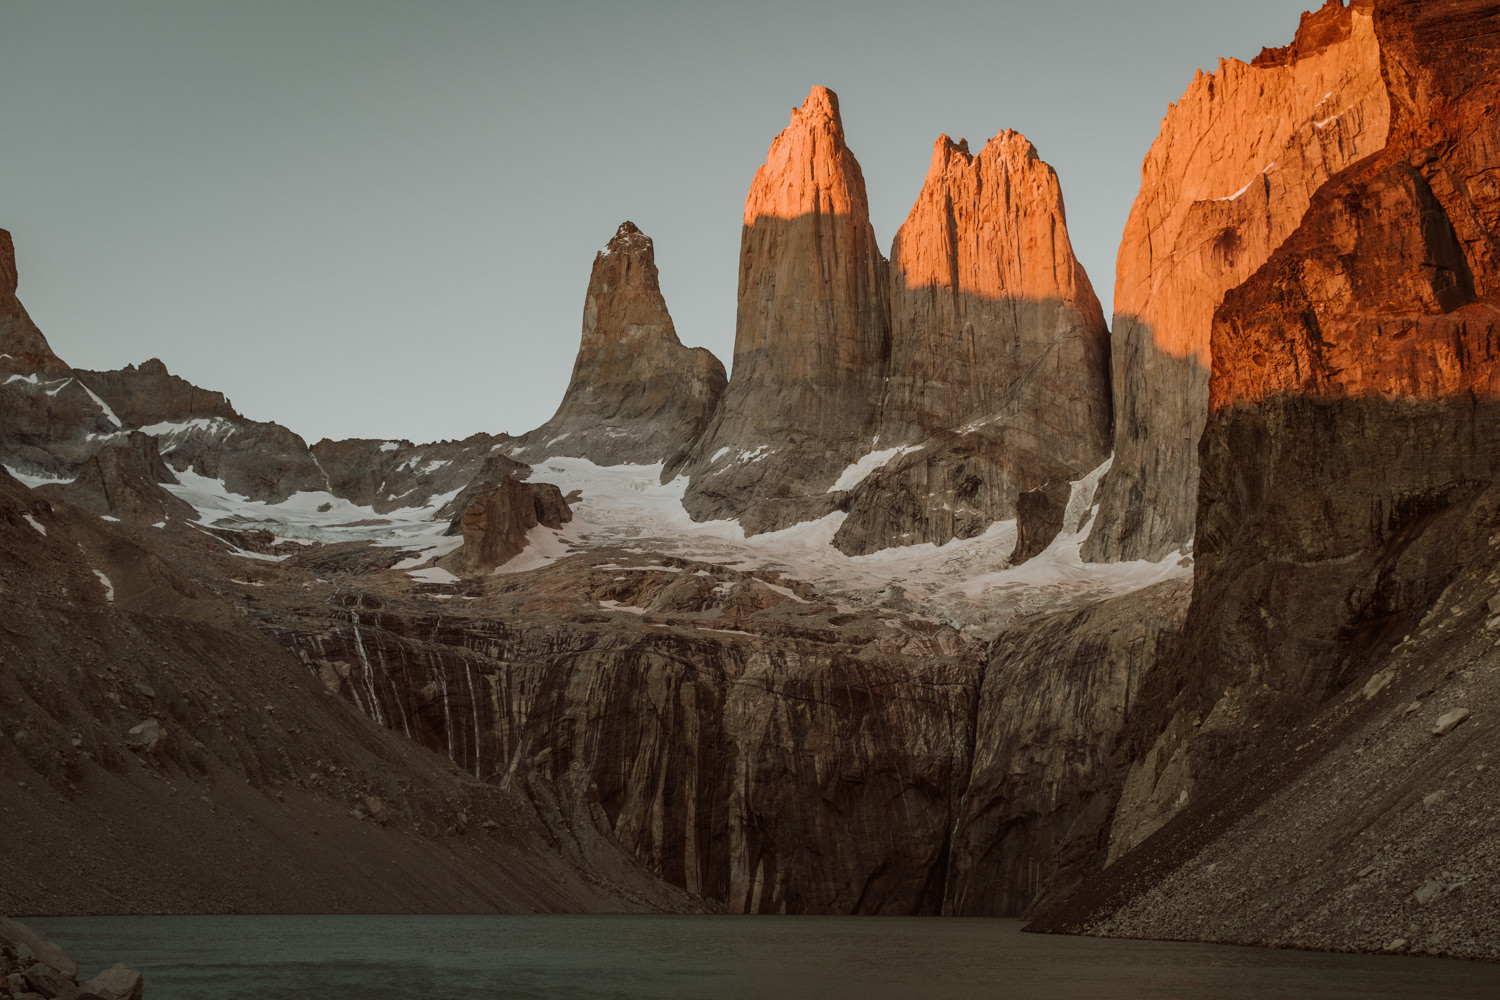 patagonia-adventure-photographer-92.jpg